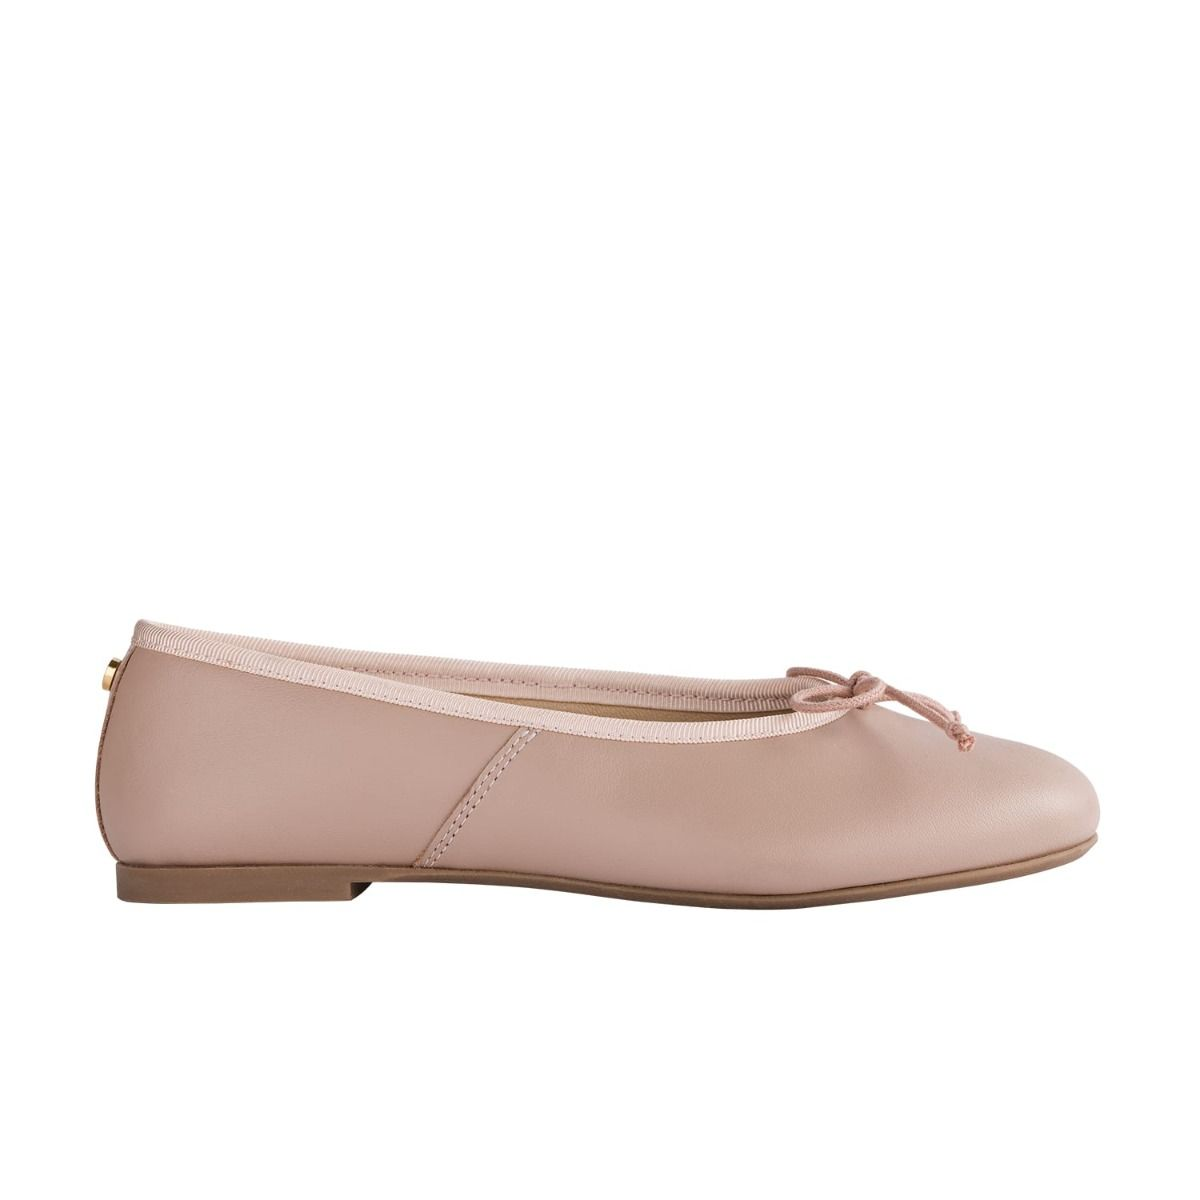 Children's ballet flats in pale pink leather with bow detail in cord.